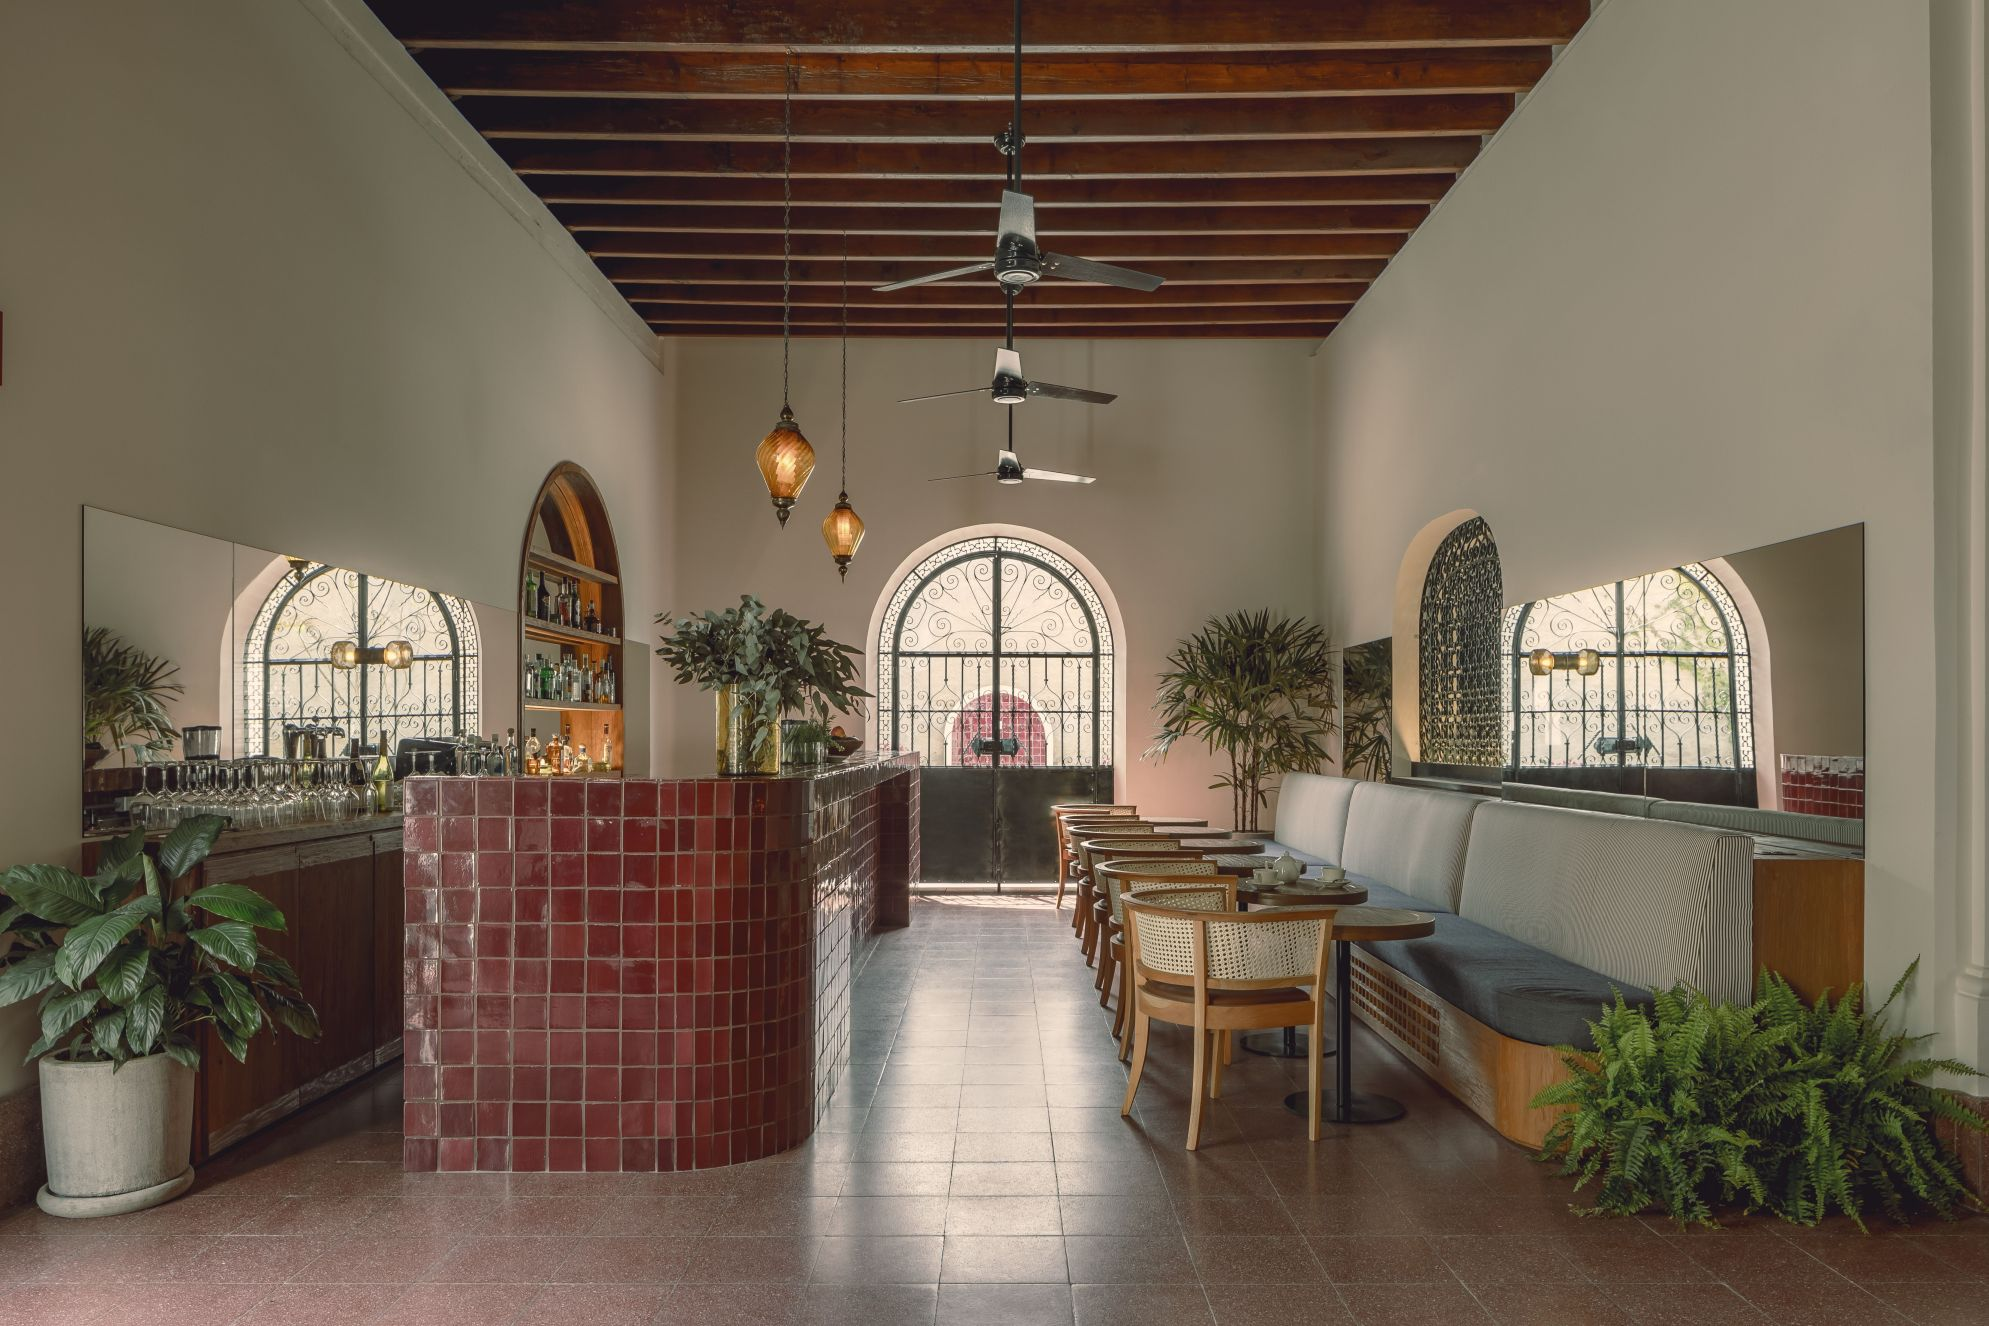 Located on a beautiful plot of coastal boardwalk in the historic center of La Paz, Baja Club is Mexico's coolest new boutique hideaway.